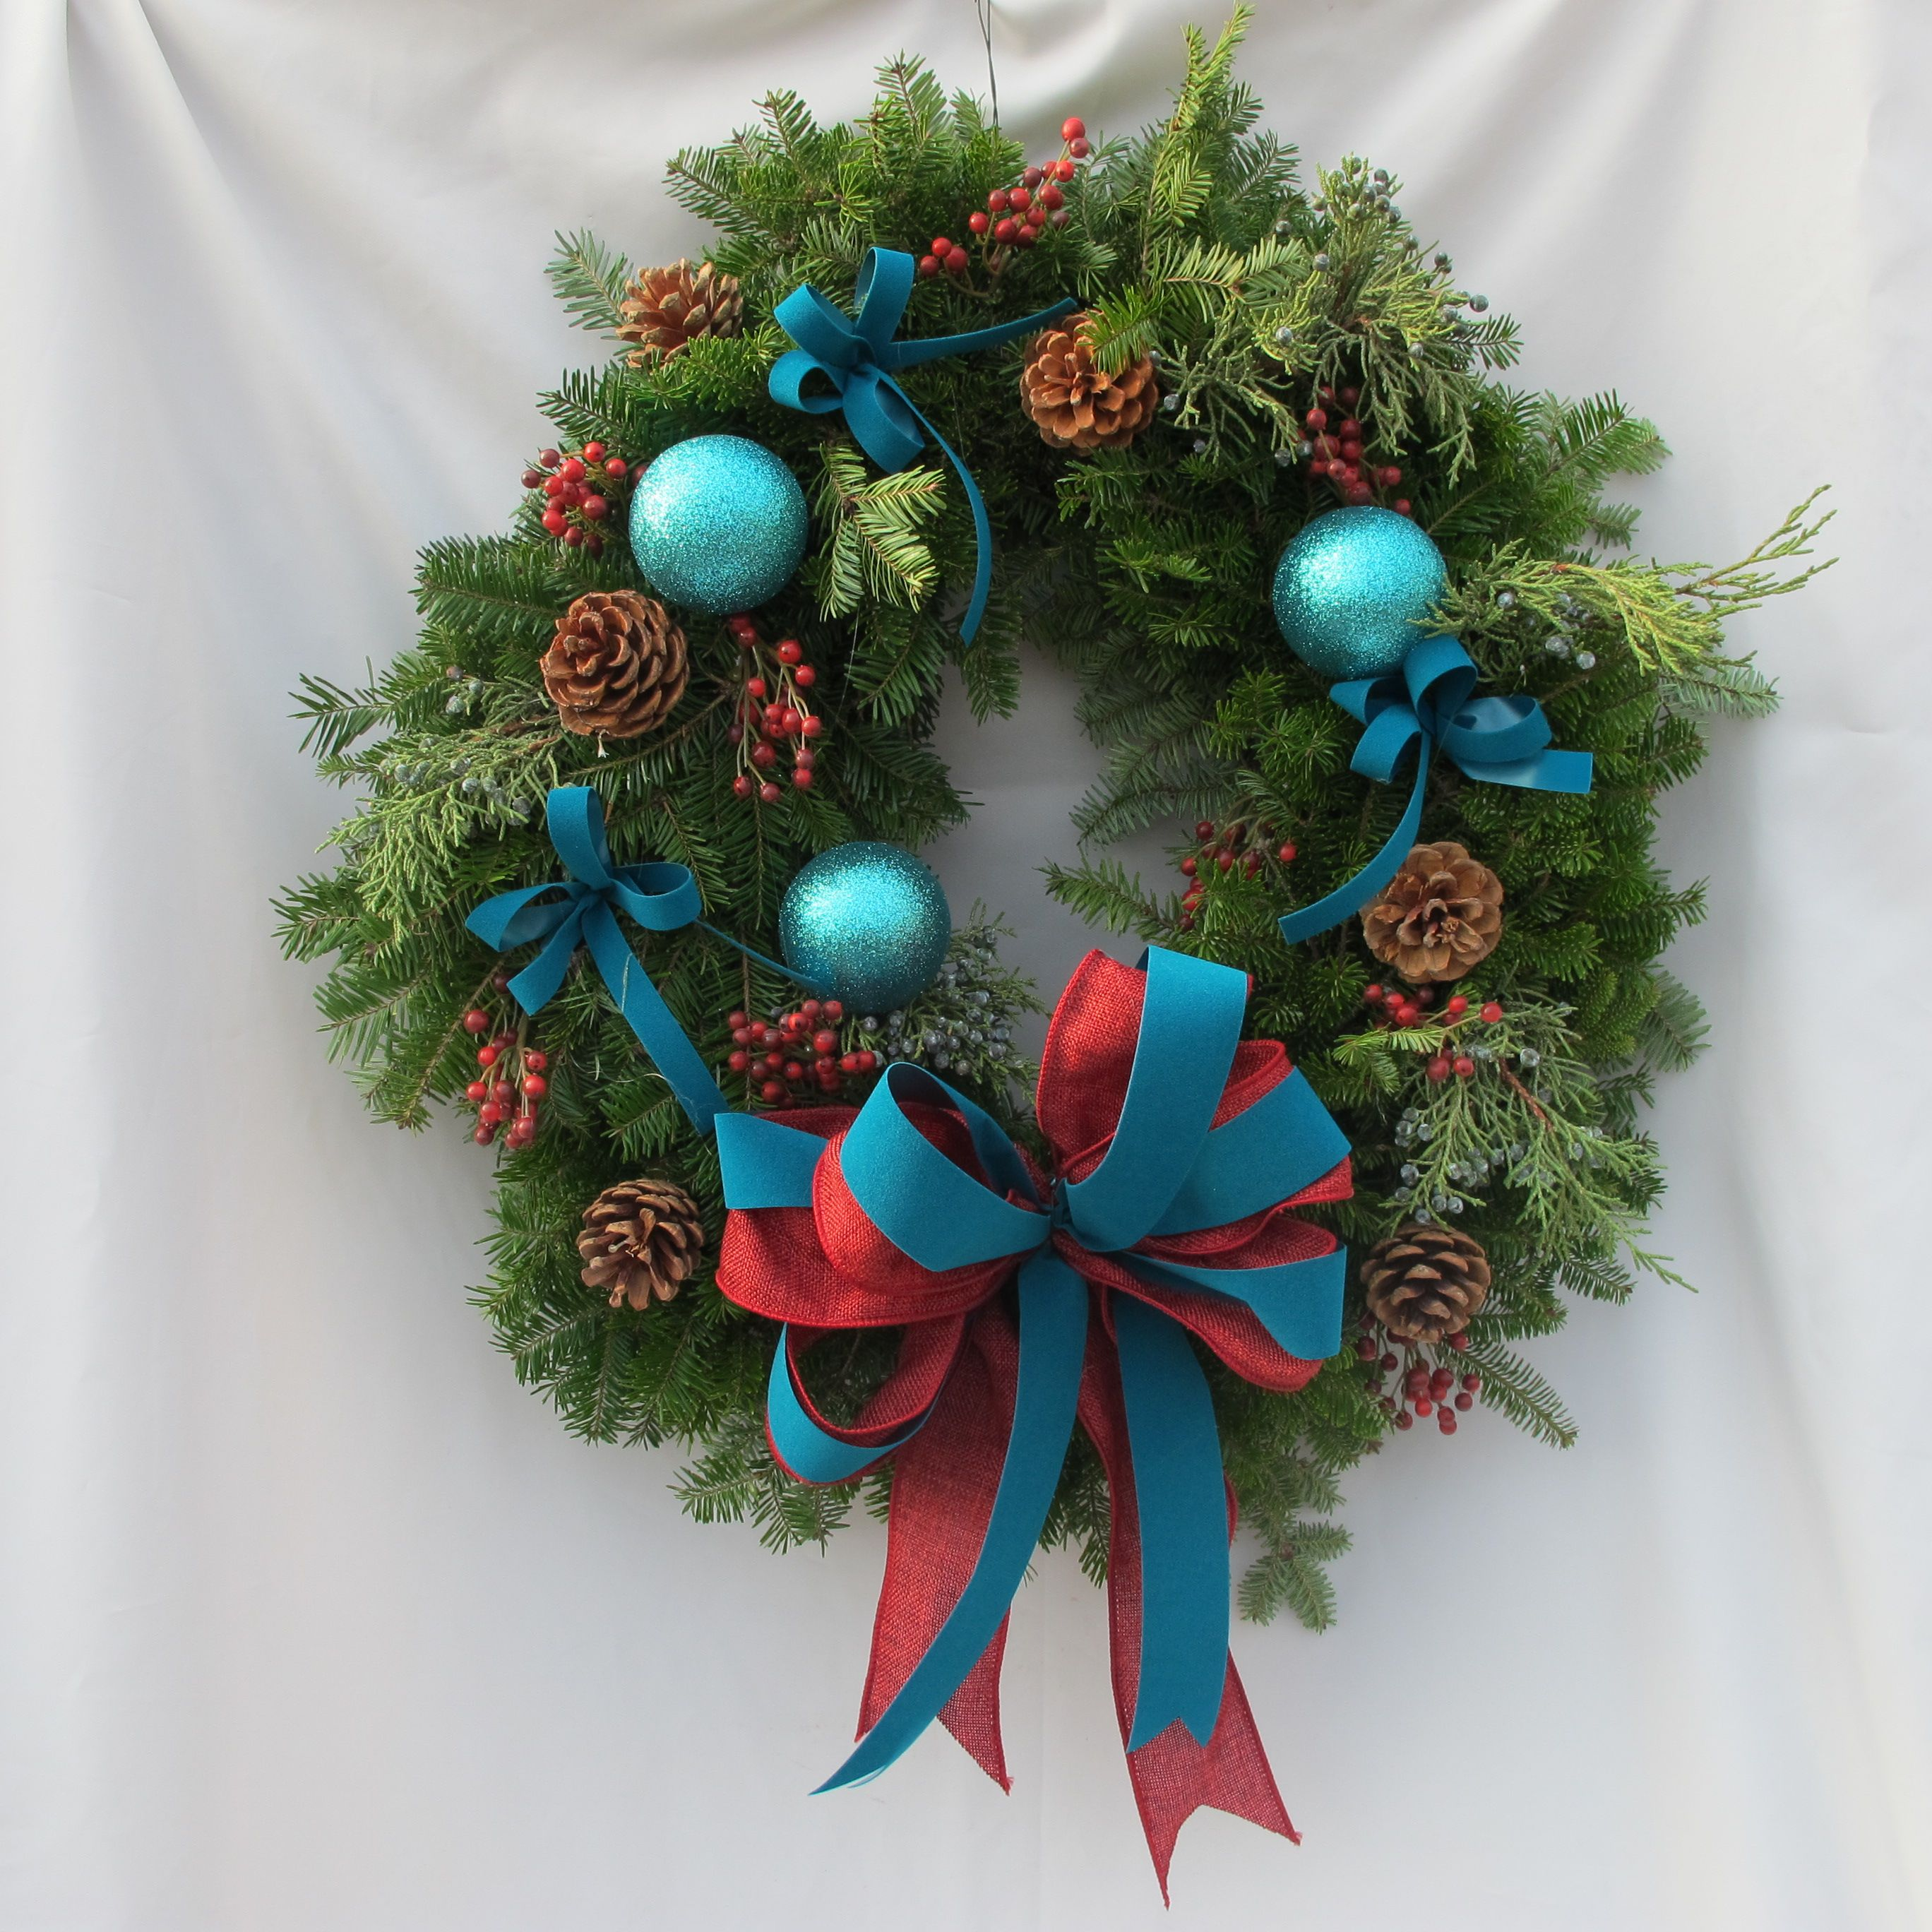 Farmside S Custom Wreath We Offer A Wide Selection Of Unique